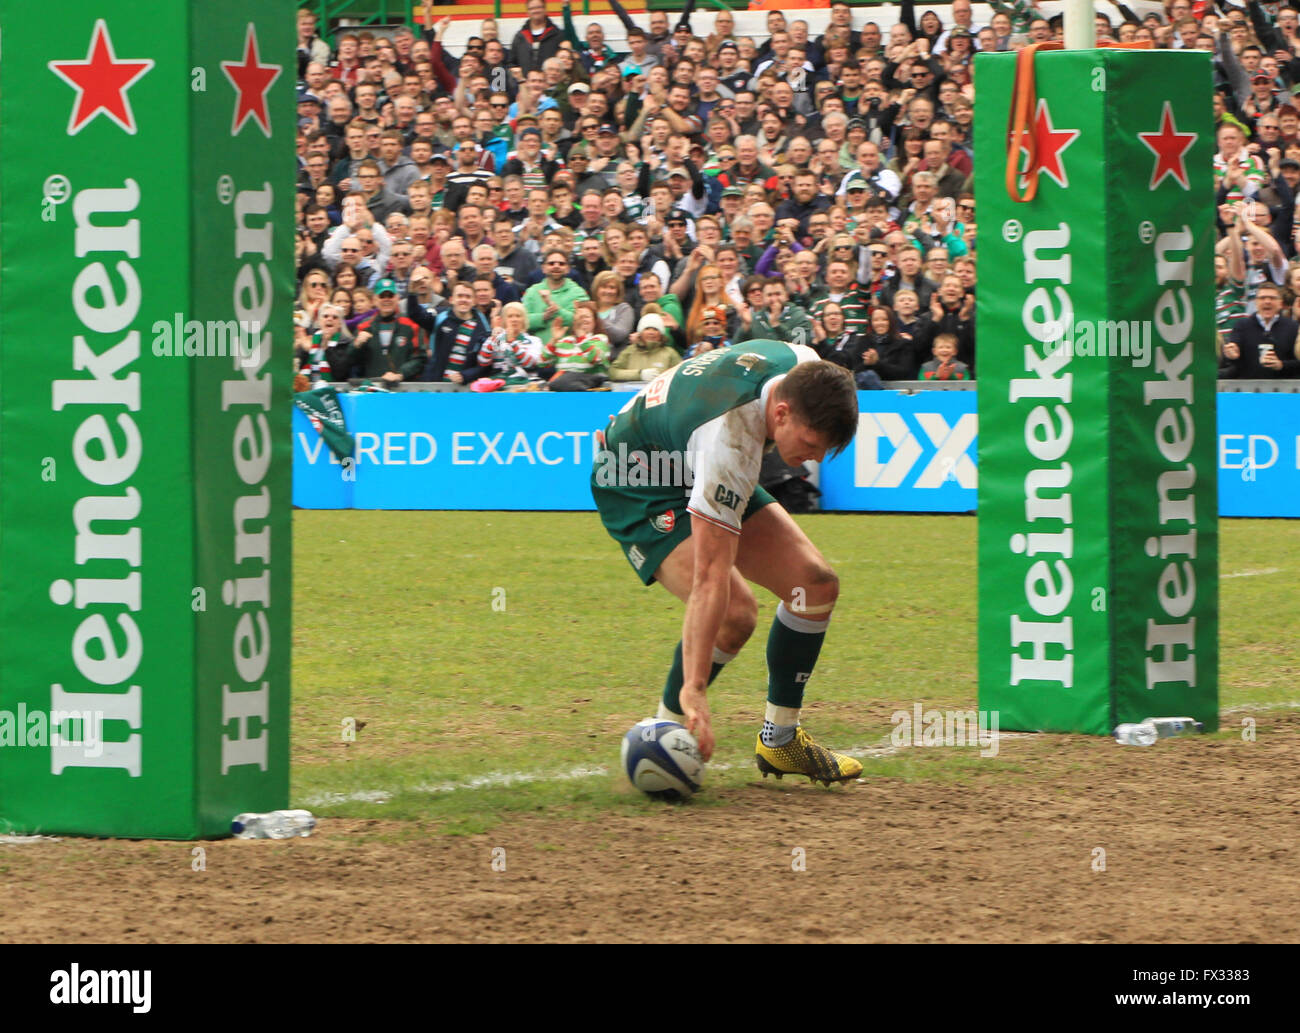 Welford Road, Leicester, UK. 10. April 2016. Sieg im Europacup. Leicester Tigers gegen Stade Francais. Tiger Fly Stockfoto